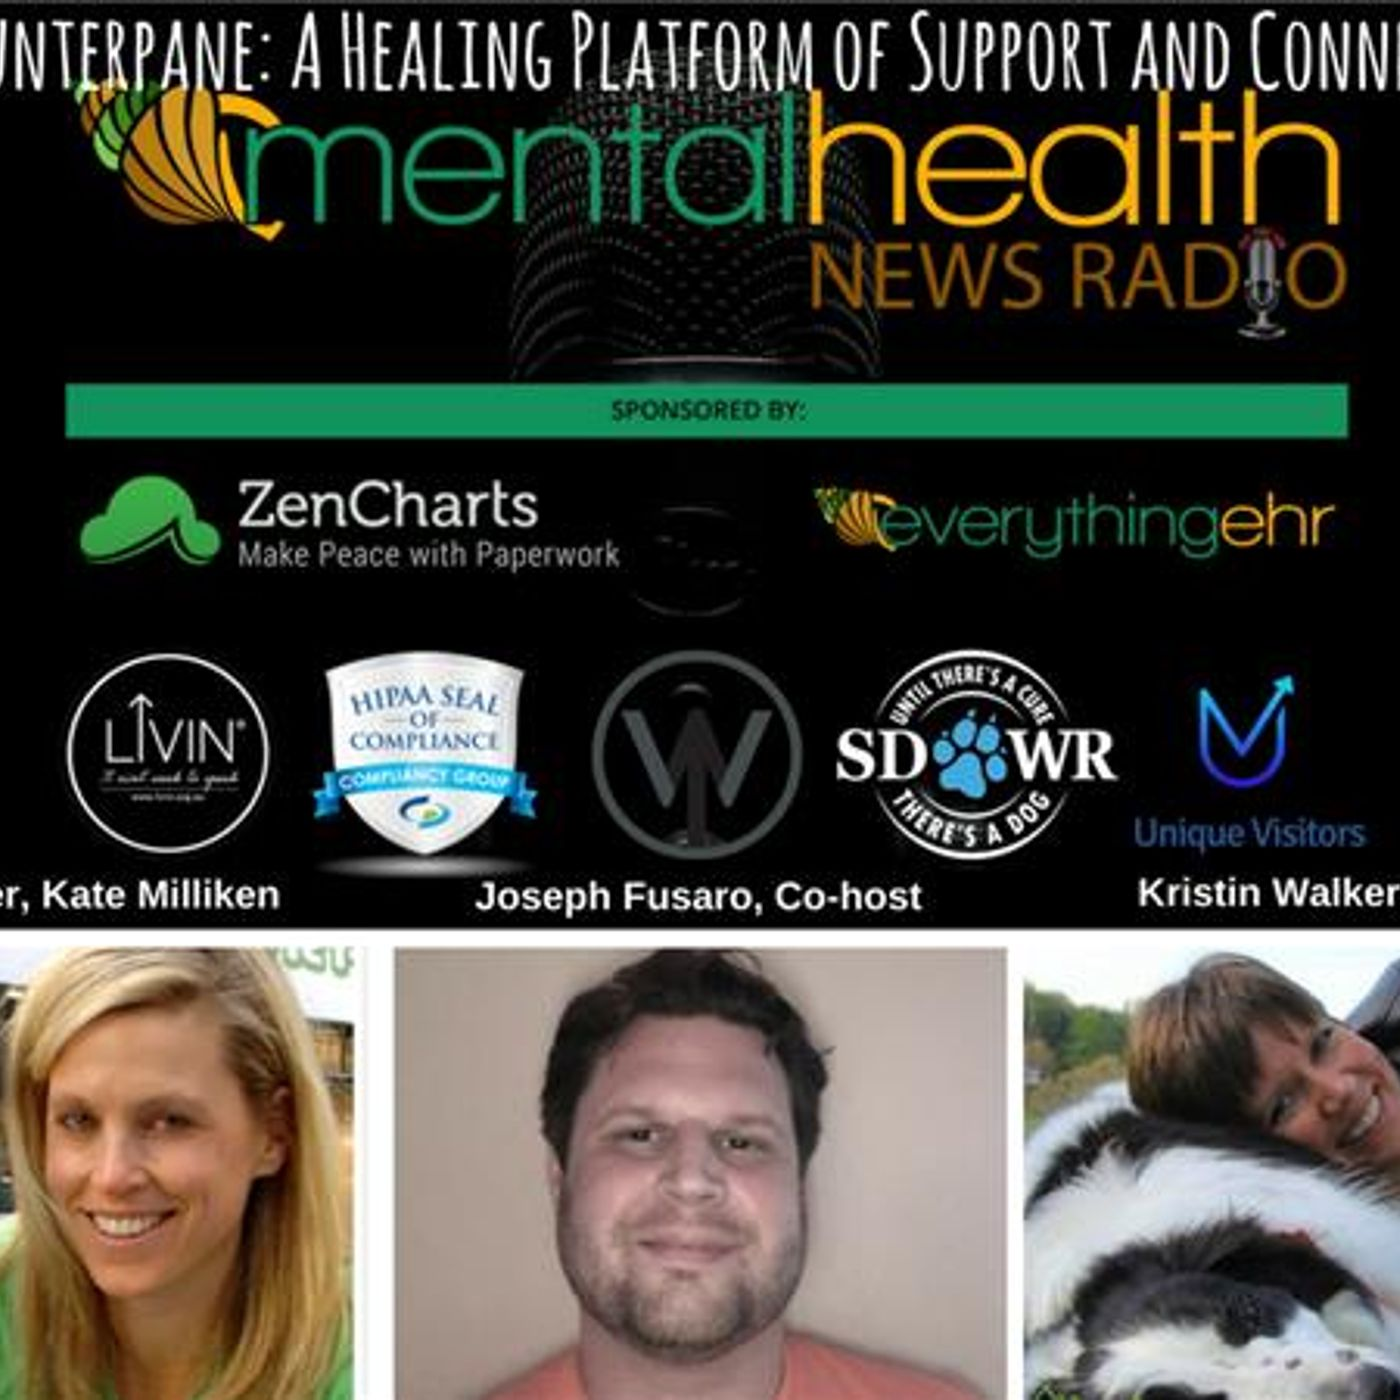 Mental Health News Radio - MyCounterpane: A Healing Platform of Support and Connection with Kate Milliken